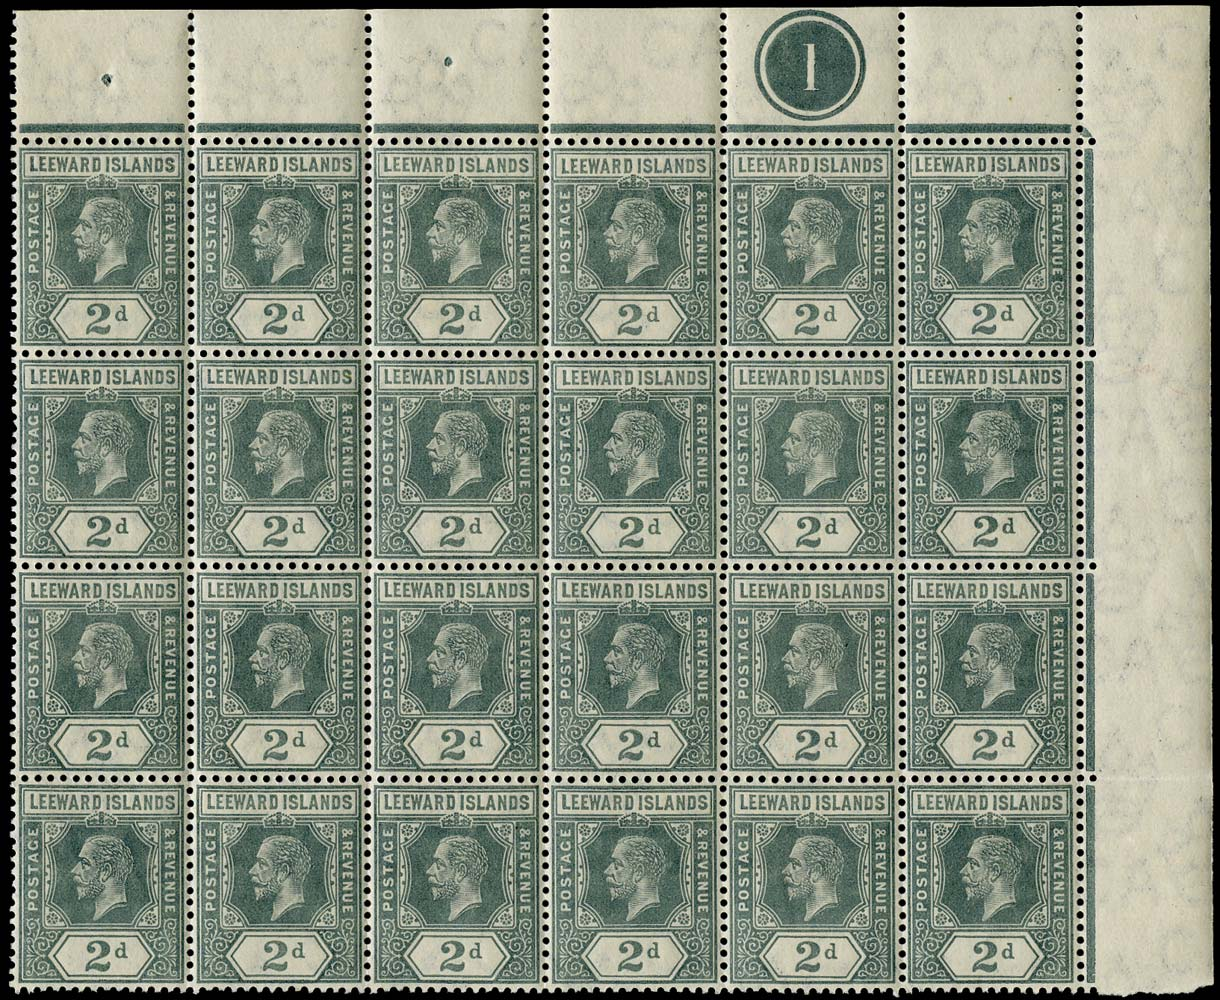 LEEWARD ISLANDS 1912  SG49 Mint